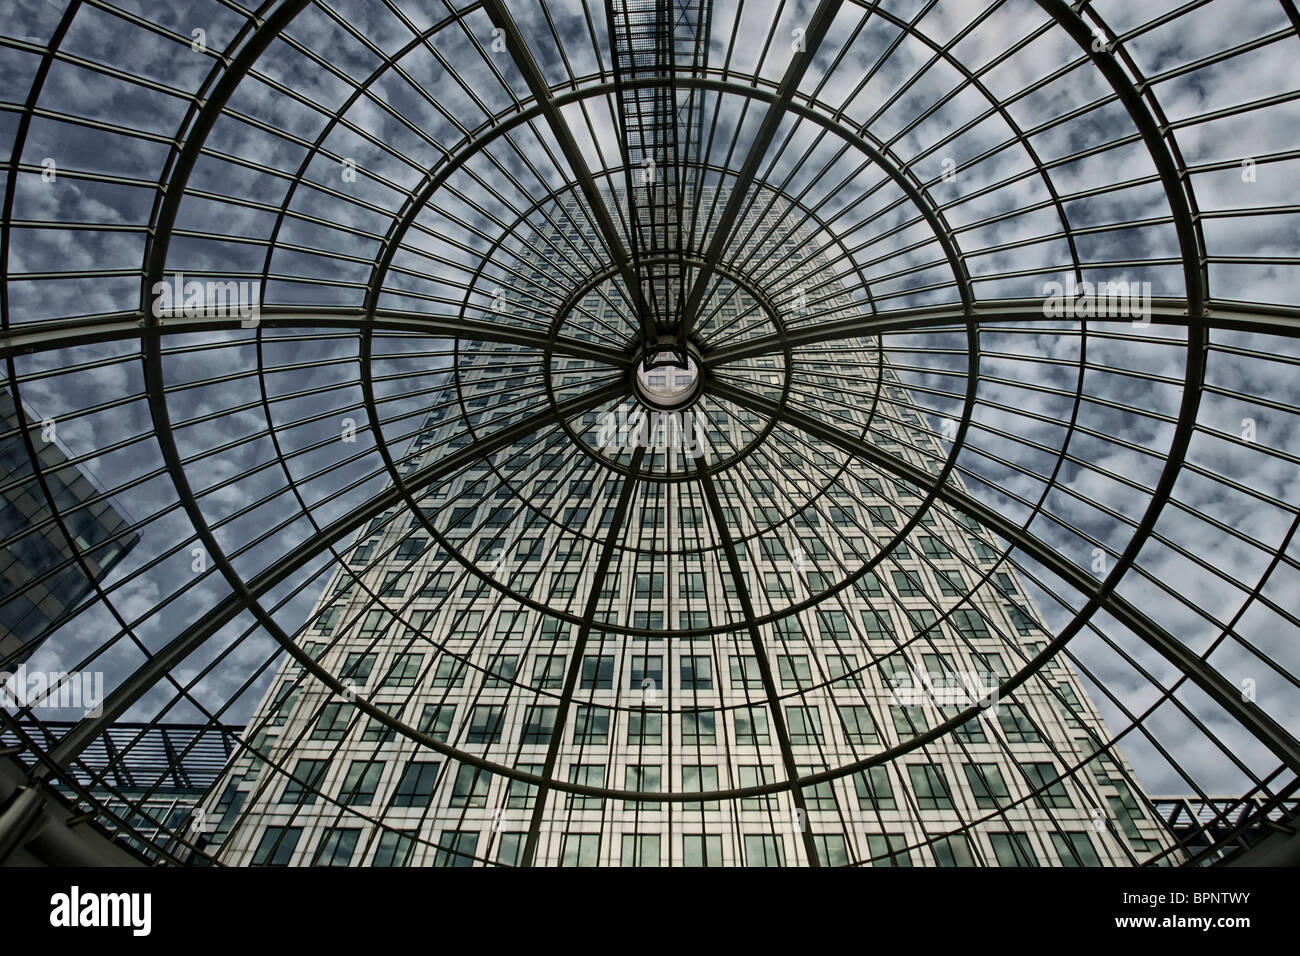 Cabot Place and One Canada Square, Canary Wharf, London, England - Stock Image